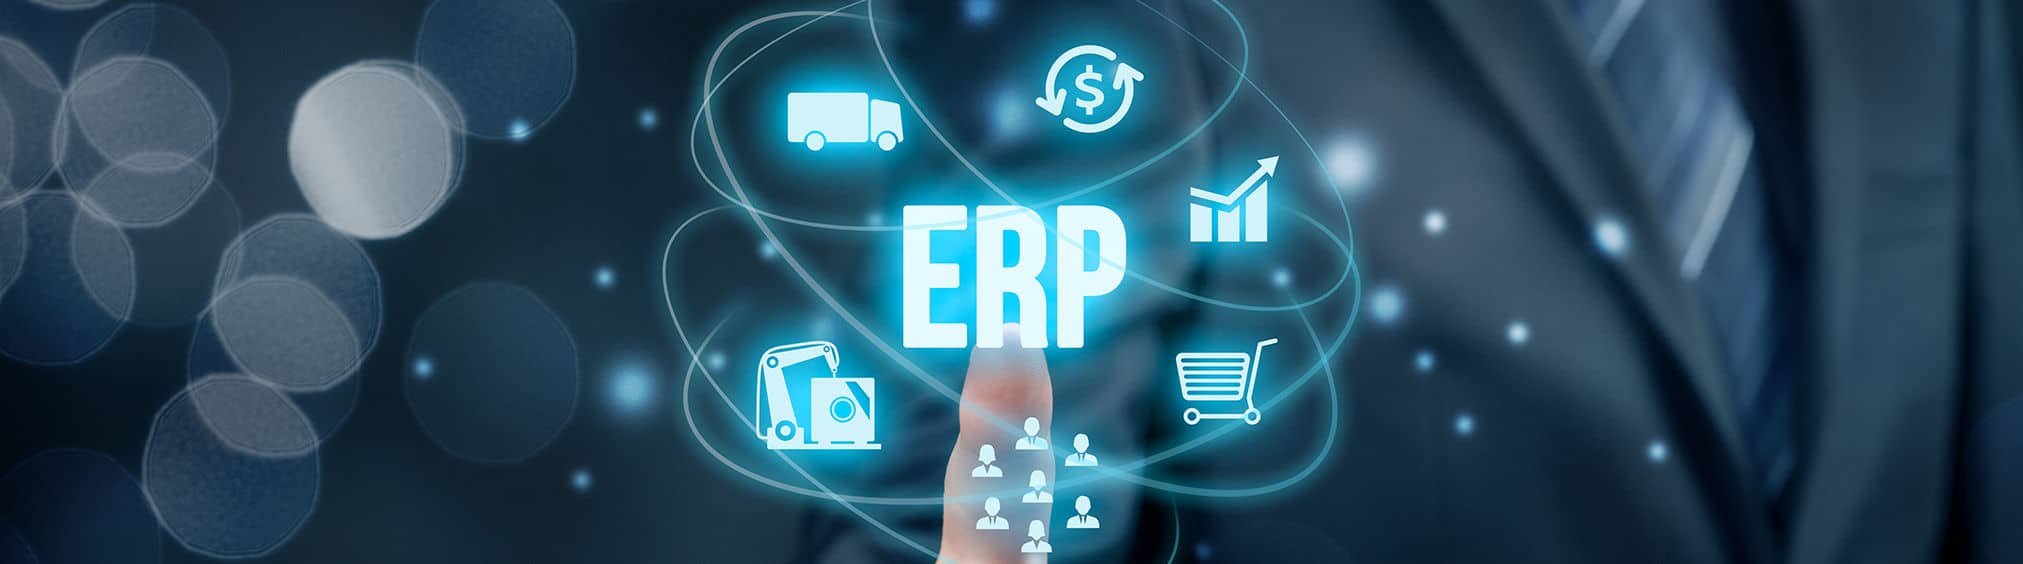 Software: EchoSCM ERP Apparel Management Software